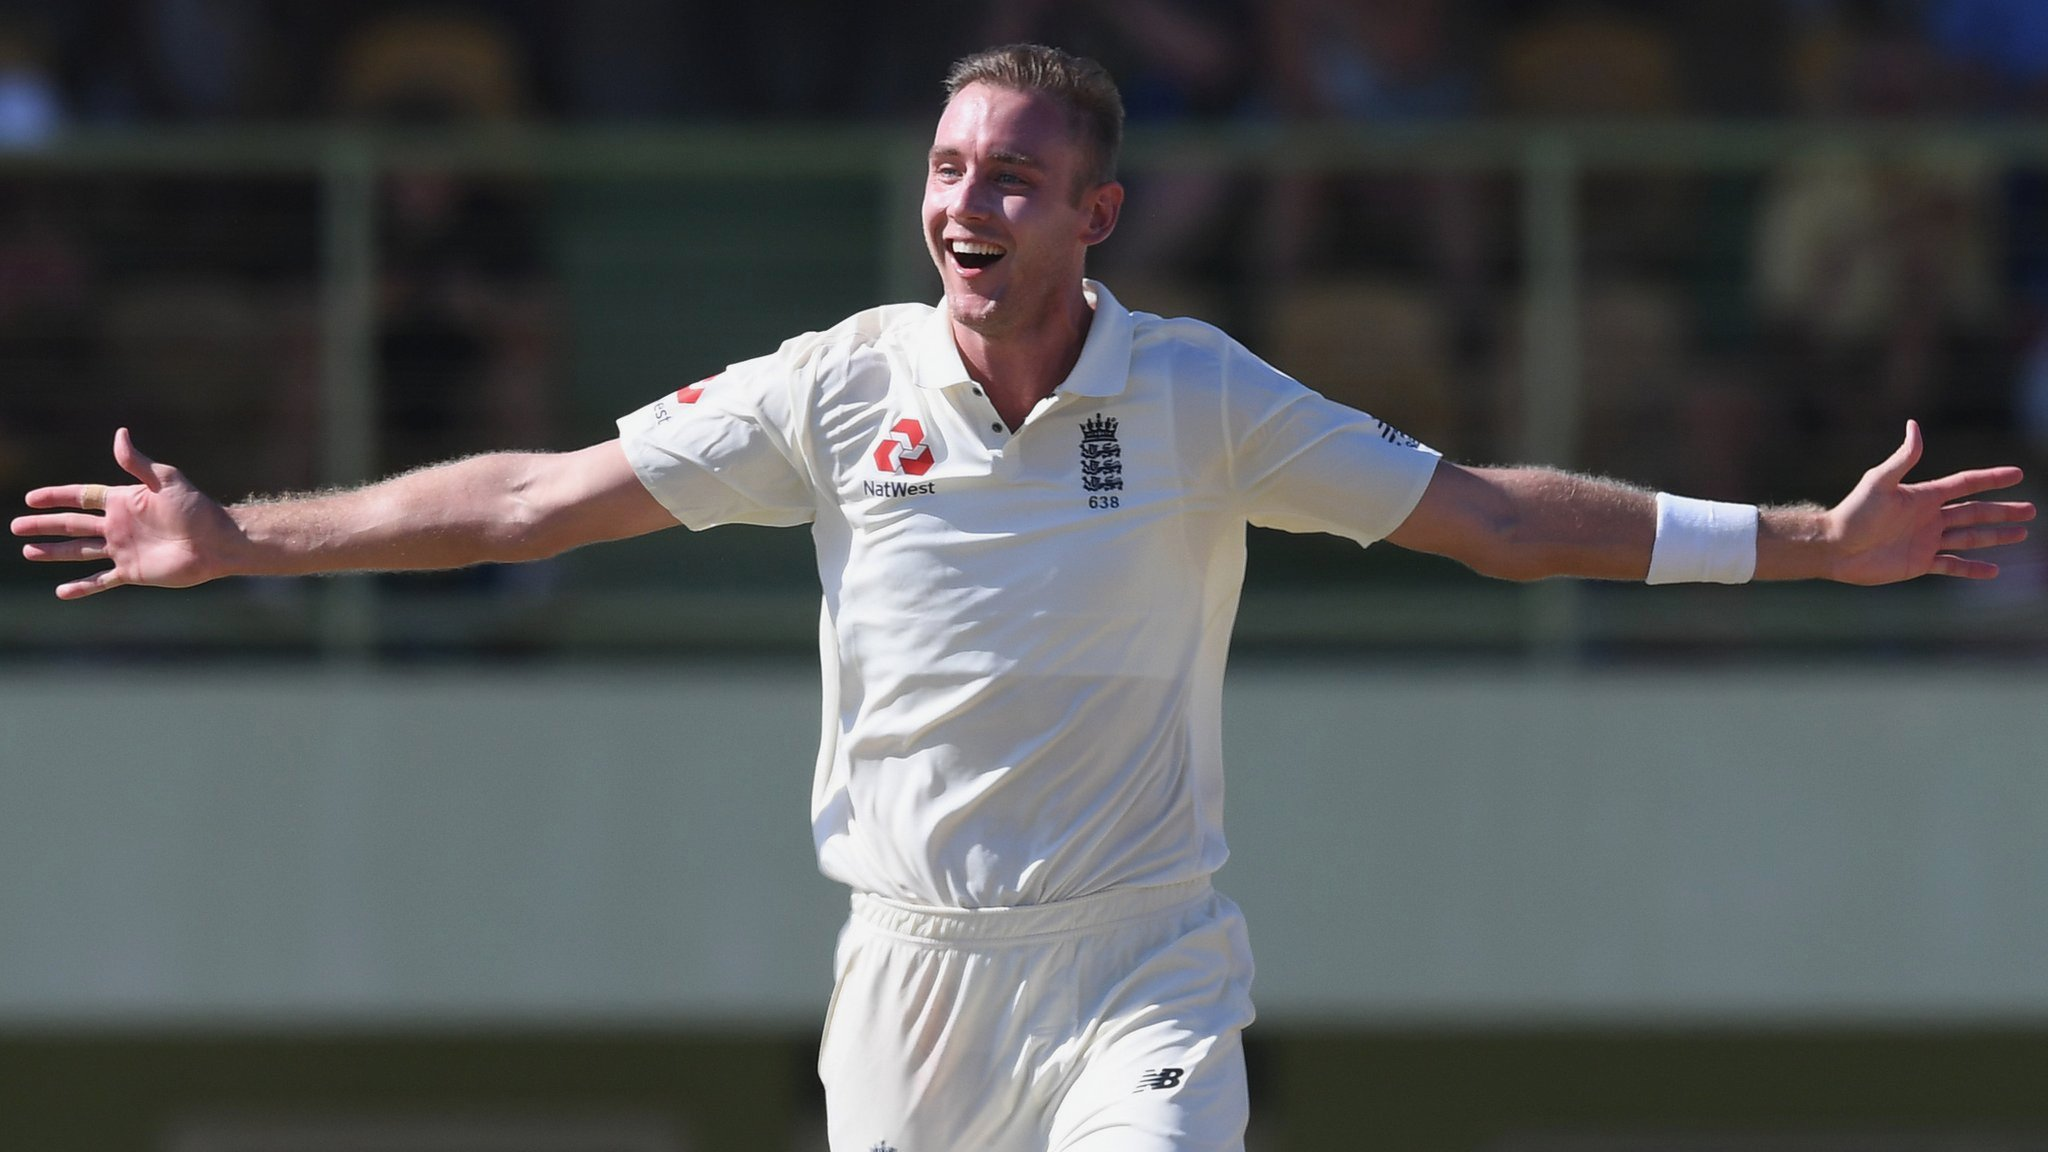 England in West Indies: Stuart Broad takes hat-trick in warm-up game